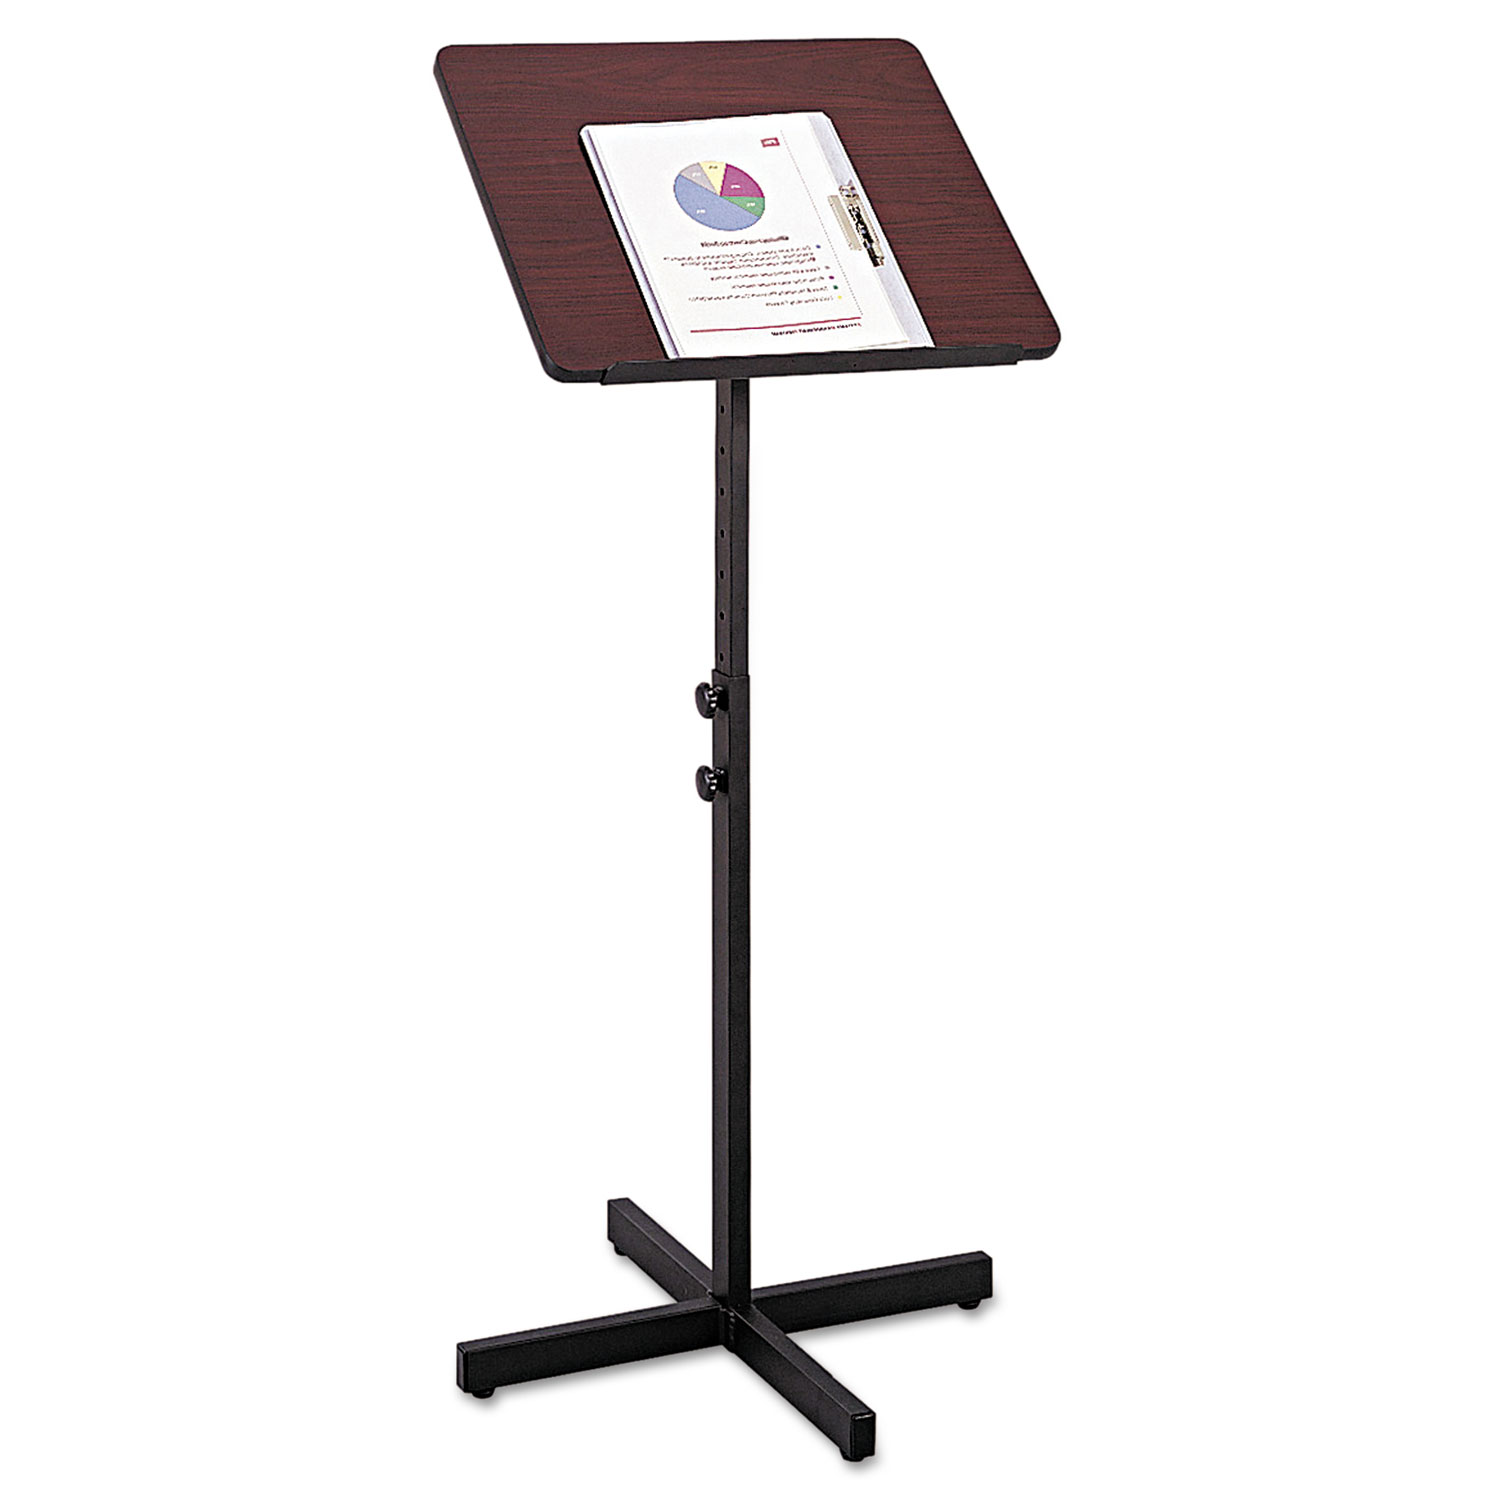 Adjustable Speaker Stand, 21w x 21d x 29.5h to 46h, Mahogany/Black